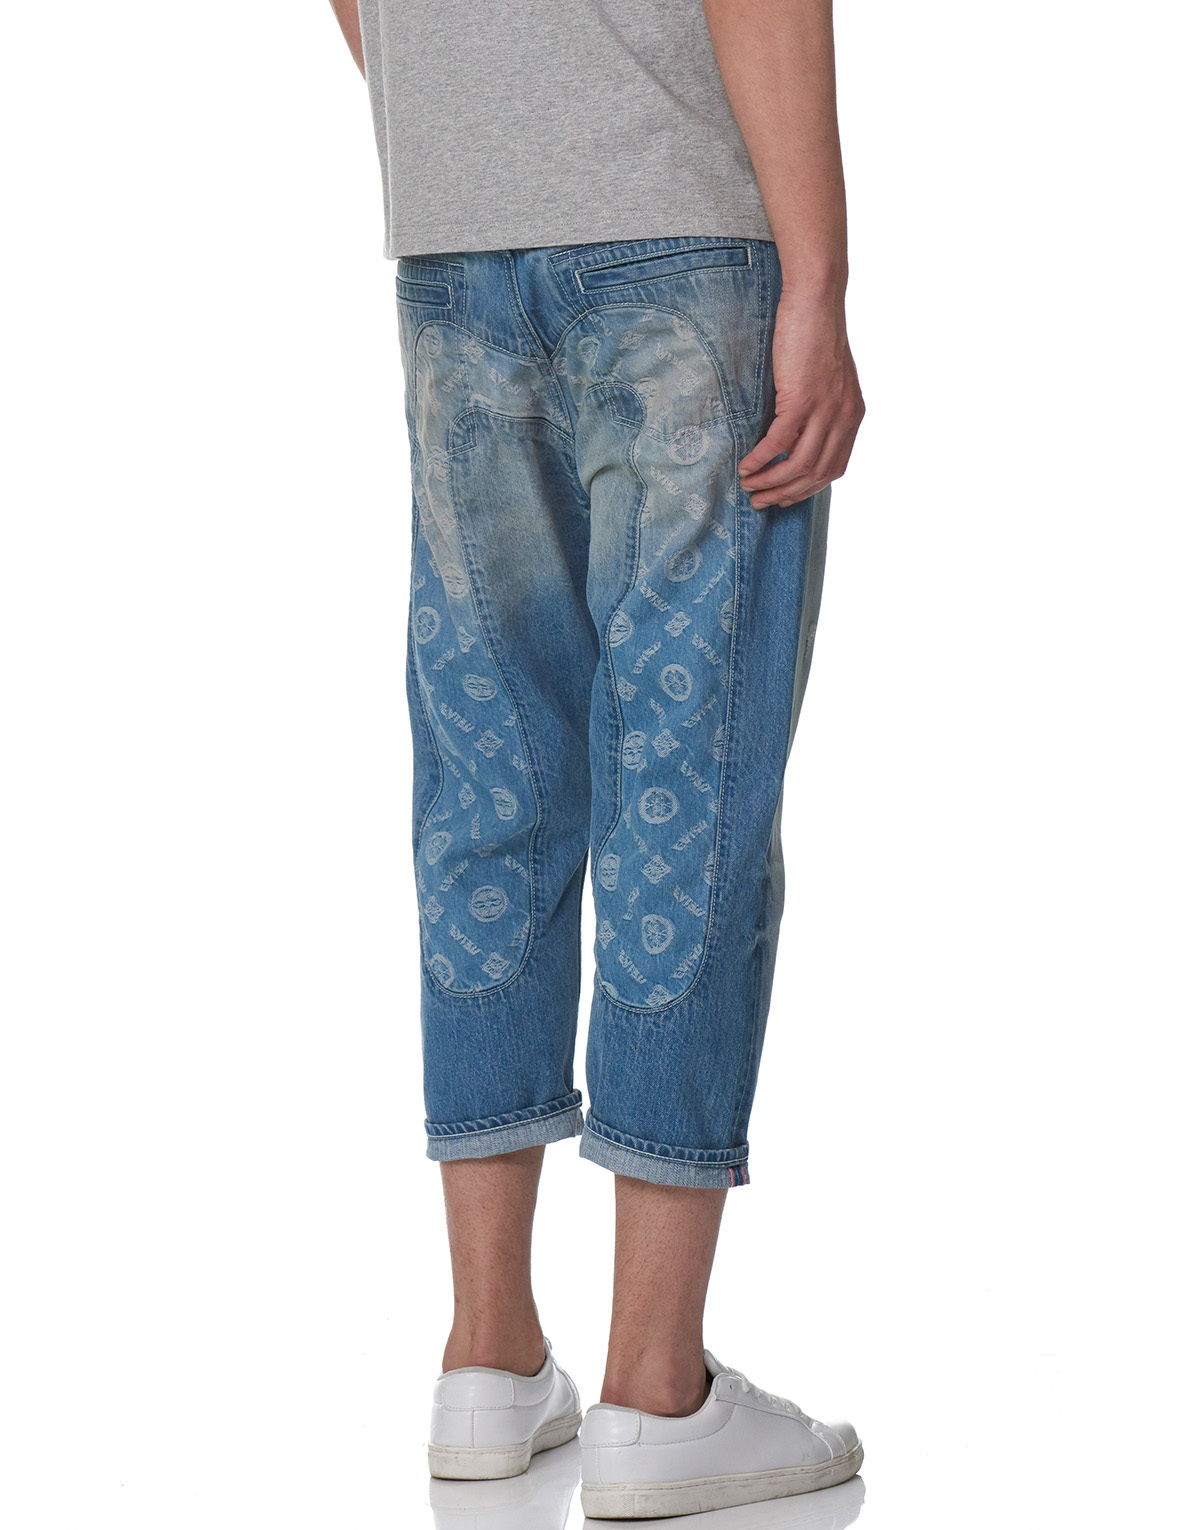 EVISU DENIM JEANS WITH JACQUARD INSERT DAICOCK